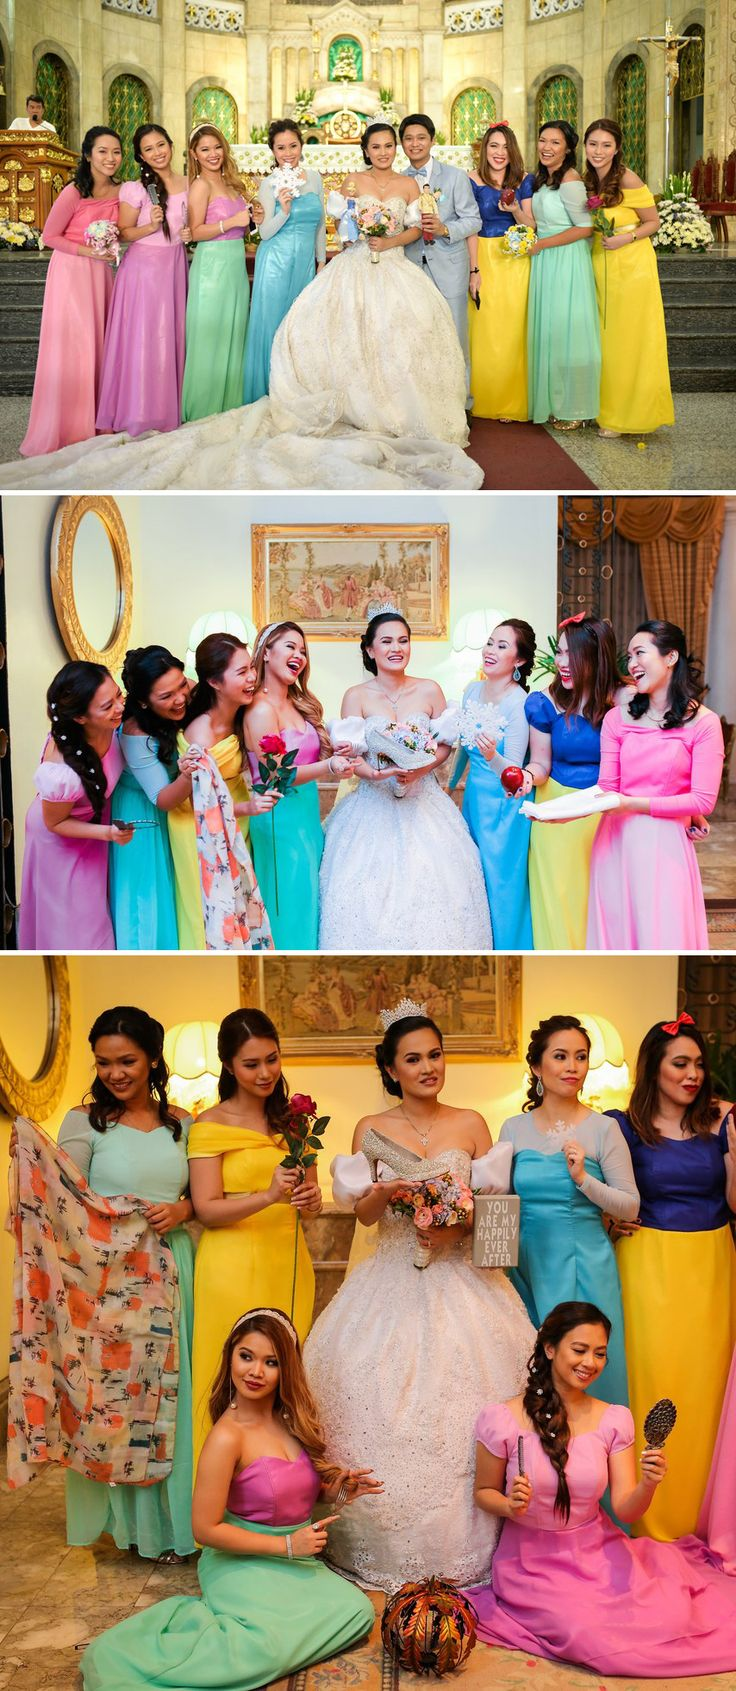 "Disney Princess #girlsquad #goals! ❤️ ❤️ ❤️ You just saw Janna Robles Santos and Nikko's incredible ""A Whole New World"" #wedding duet and as promised, here are the photos from their fairytale themed celebration. Because Janna and her husband run bridal shoe business Sophisticat Shoes, she chose to wear a #Cinderella-inspired #weddinggown - but it didn't end there. The princess #bride had her #bridesmaids in tow, each one also dressed as a different #Disney princess!"